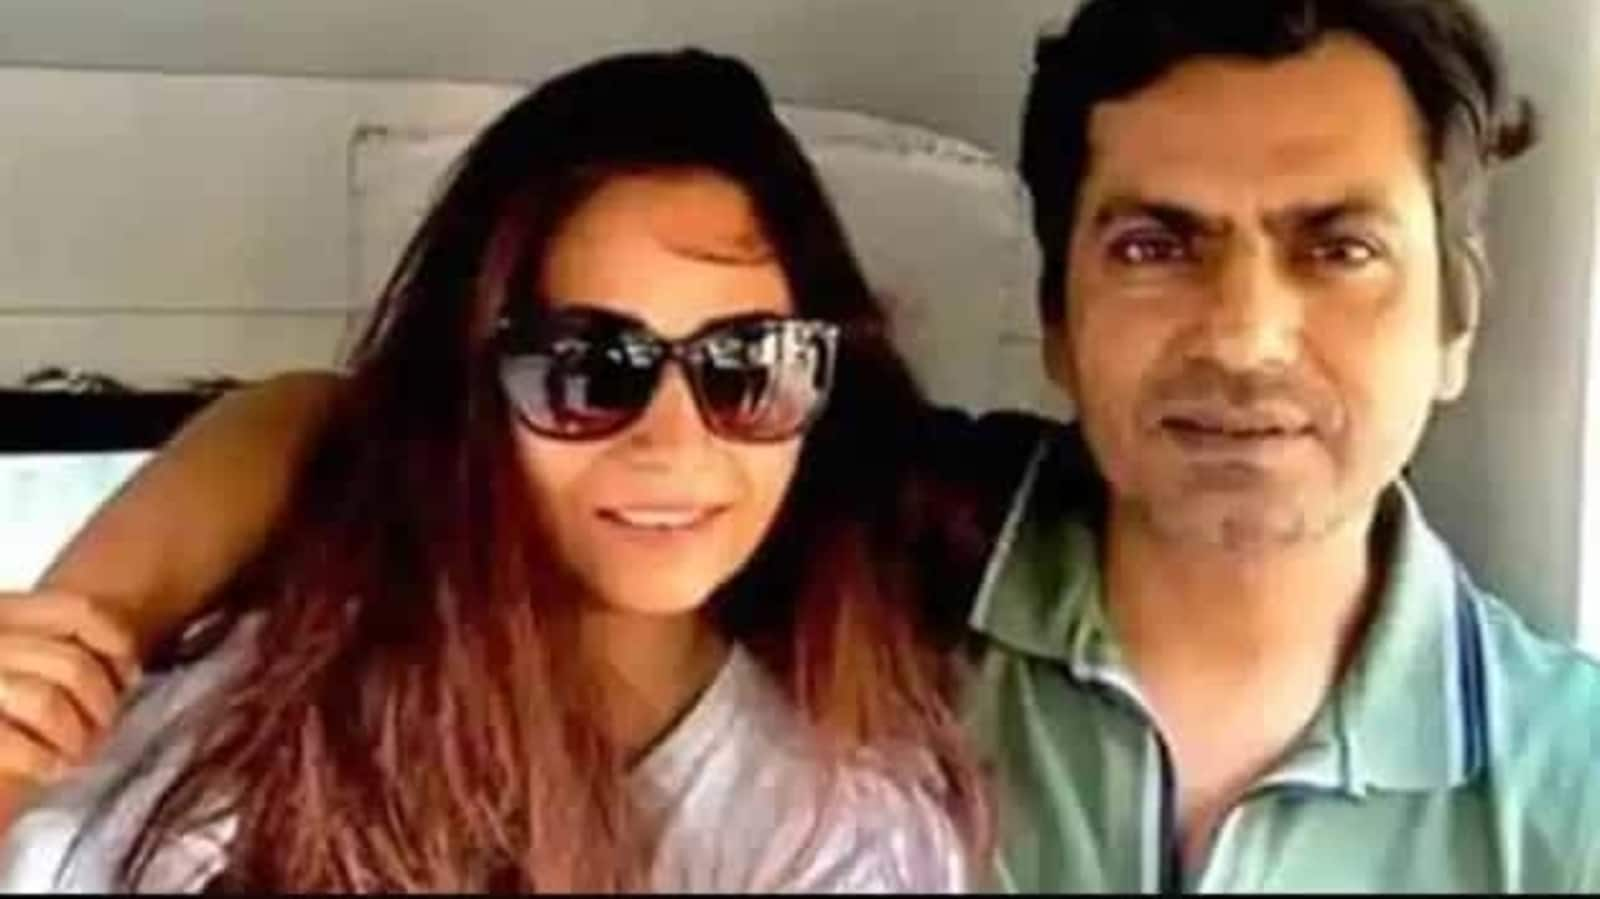 Nawazuddin Siddiqui's wife Aaliya ready to resolve issues with Shamas: 'Shall sort out and end that matter too' - Hindustan Times